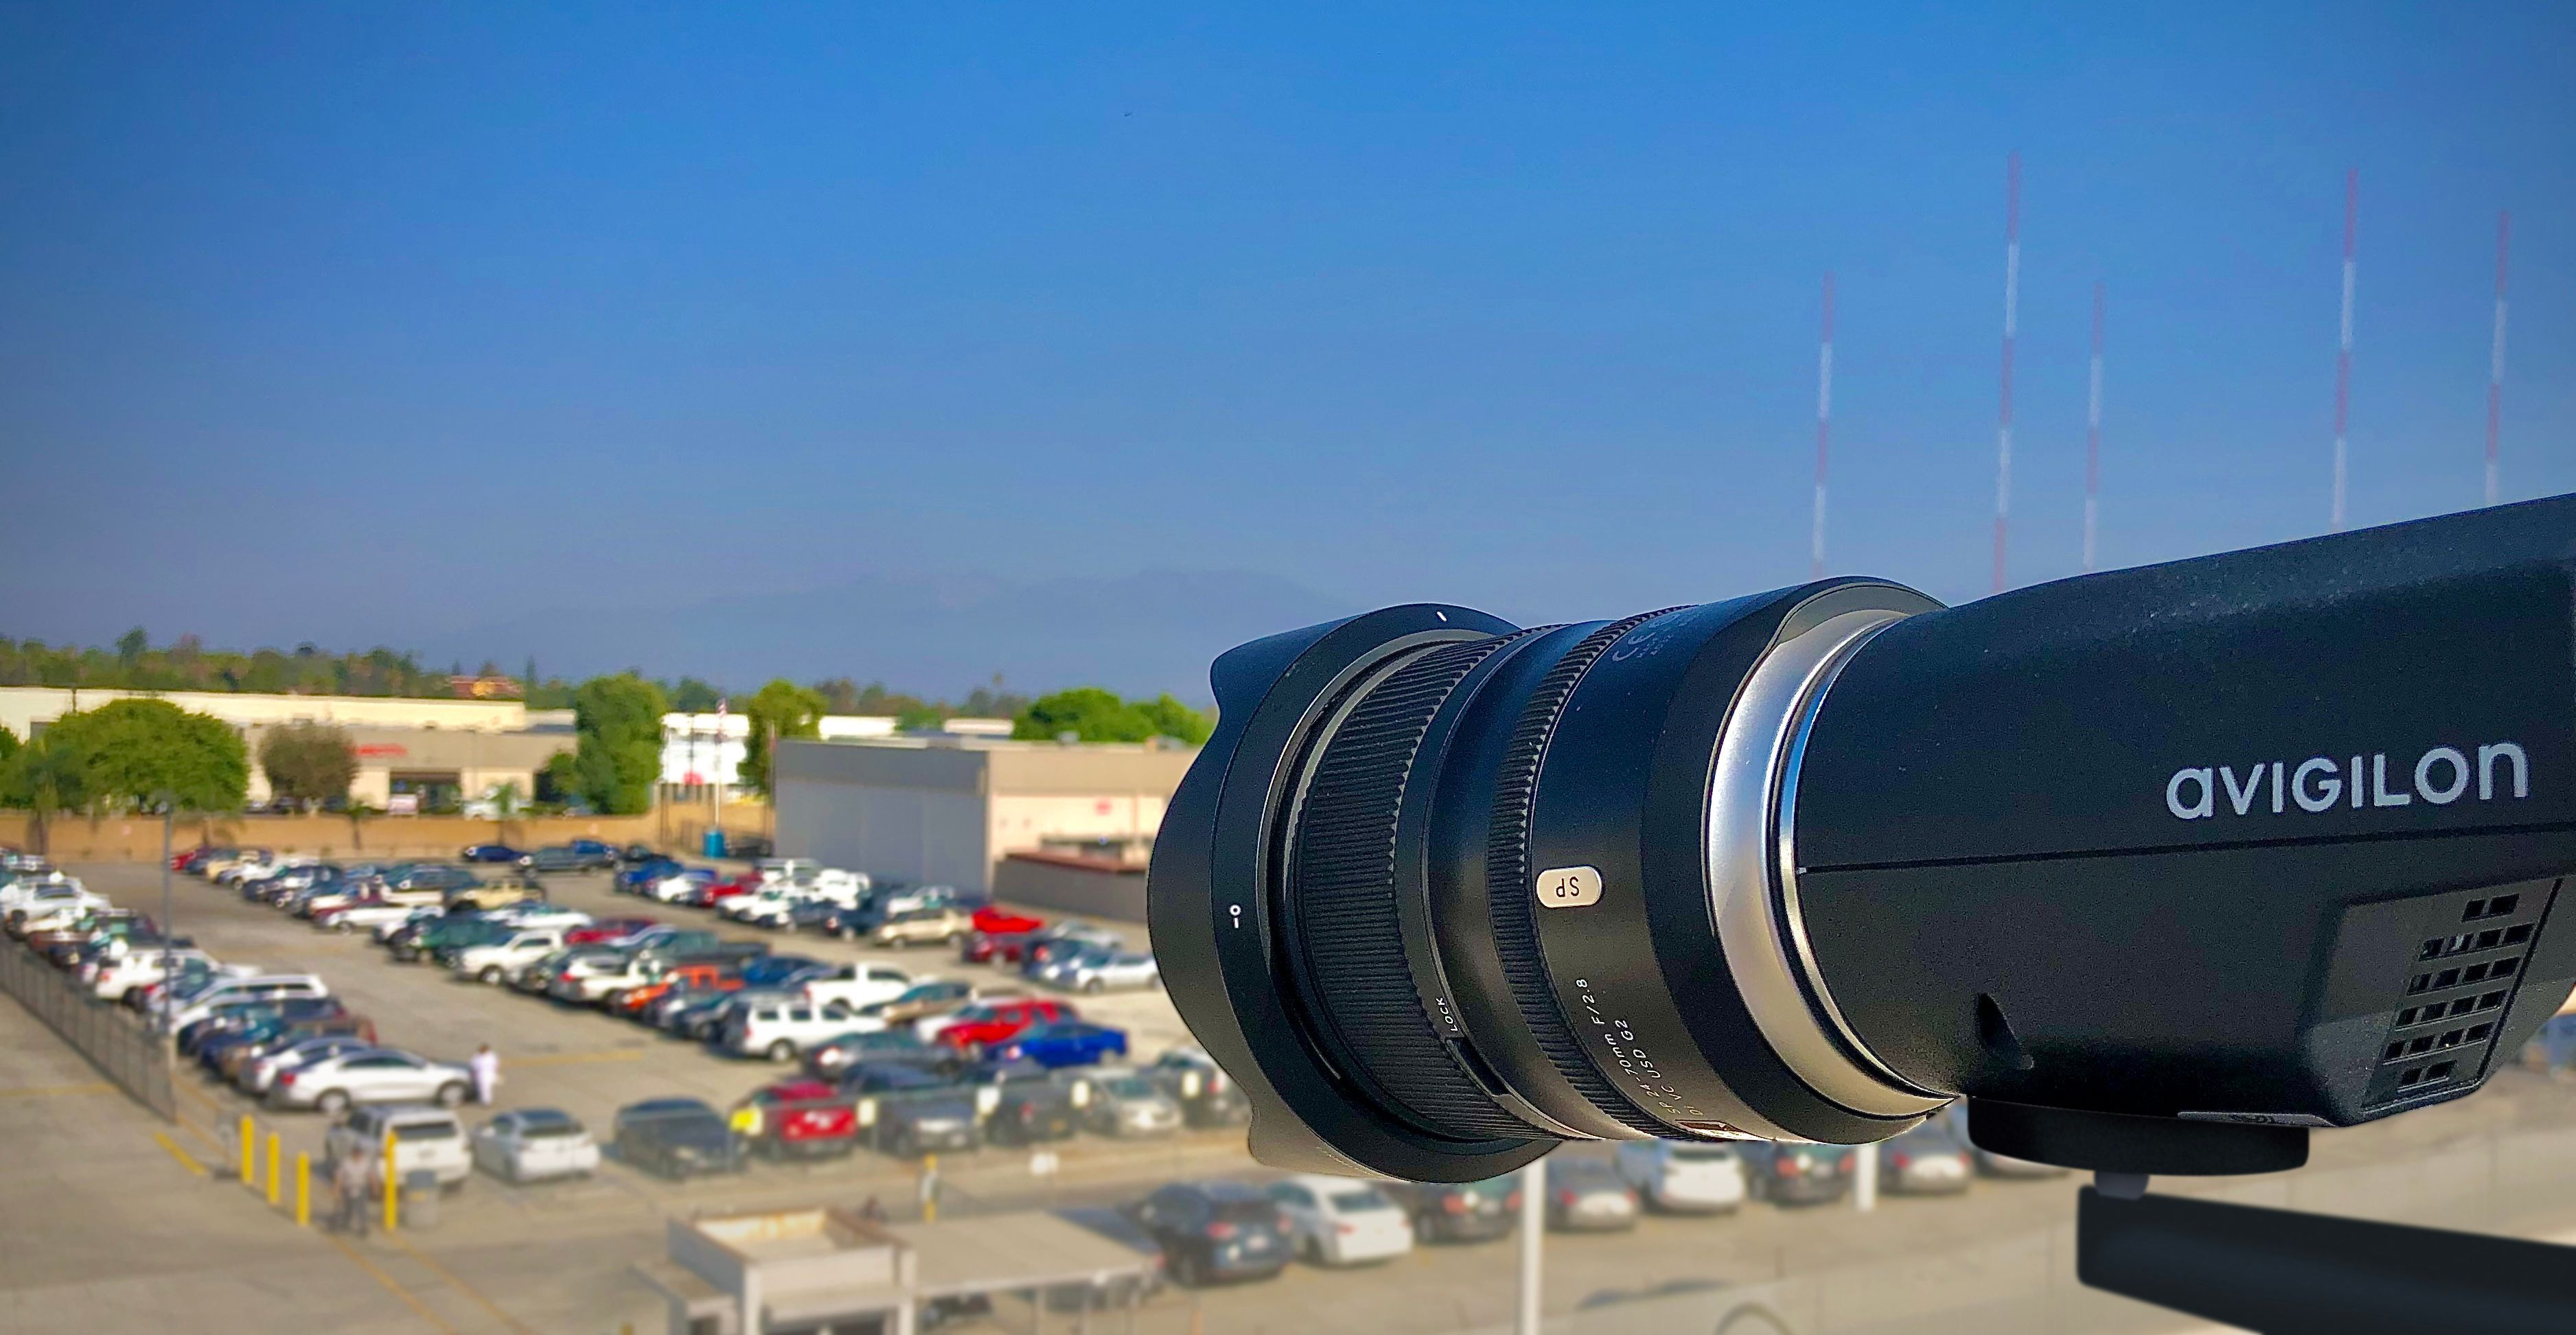 Avigilon_H4_Pro_Camera_Installed_Parking_Lot